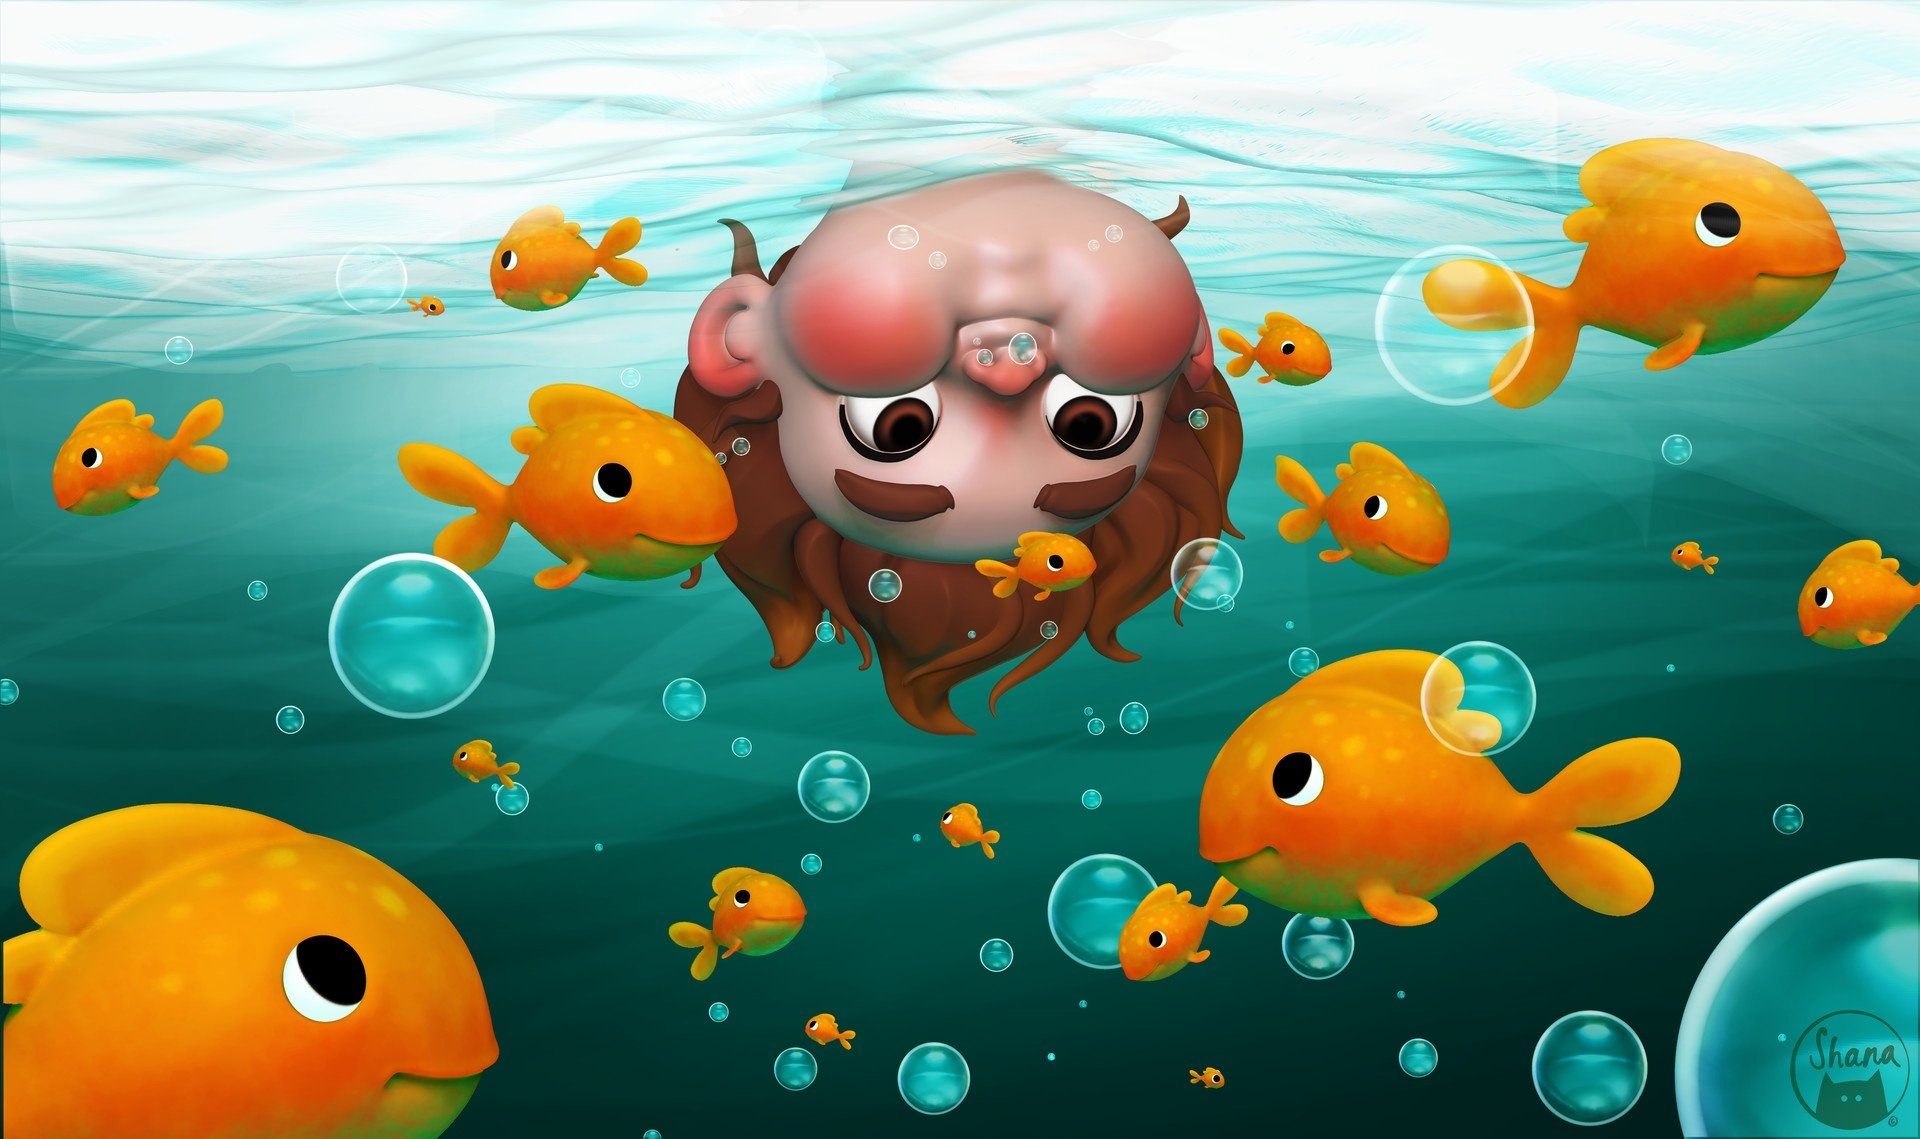 Fantasy - Child  Underwater Bubble Fish Boy Little Boy Brown Eyes Wallpaper